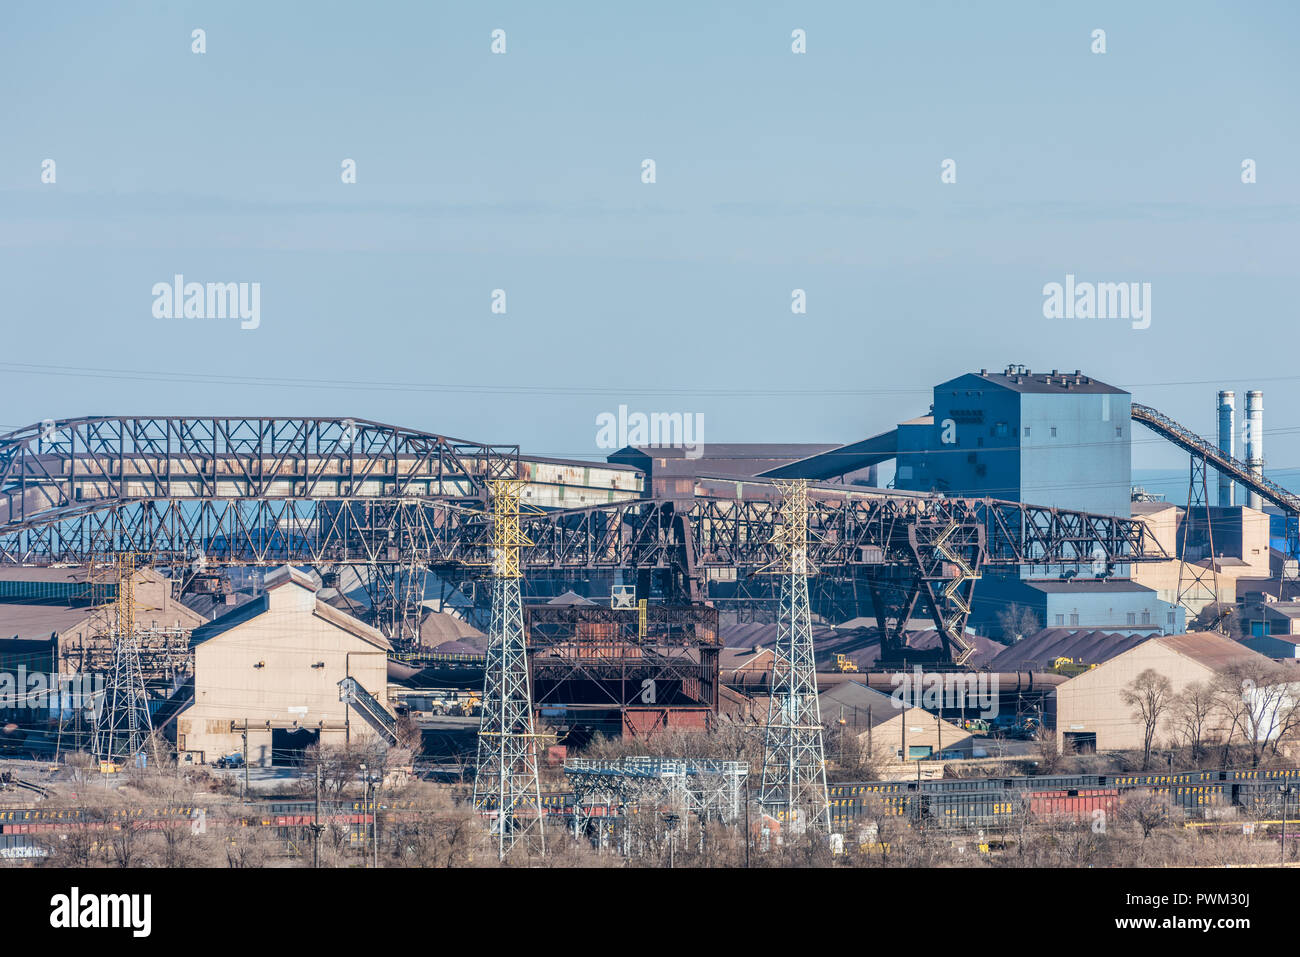 Aerial view of steel mills in Gary - Stock Image